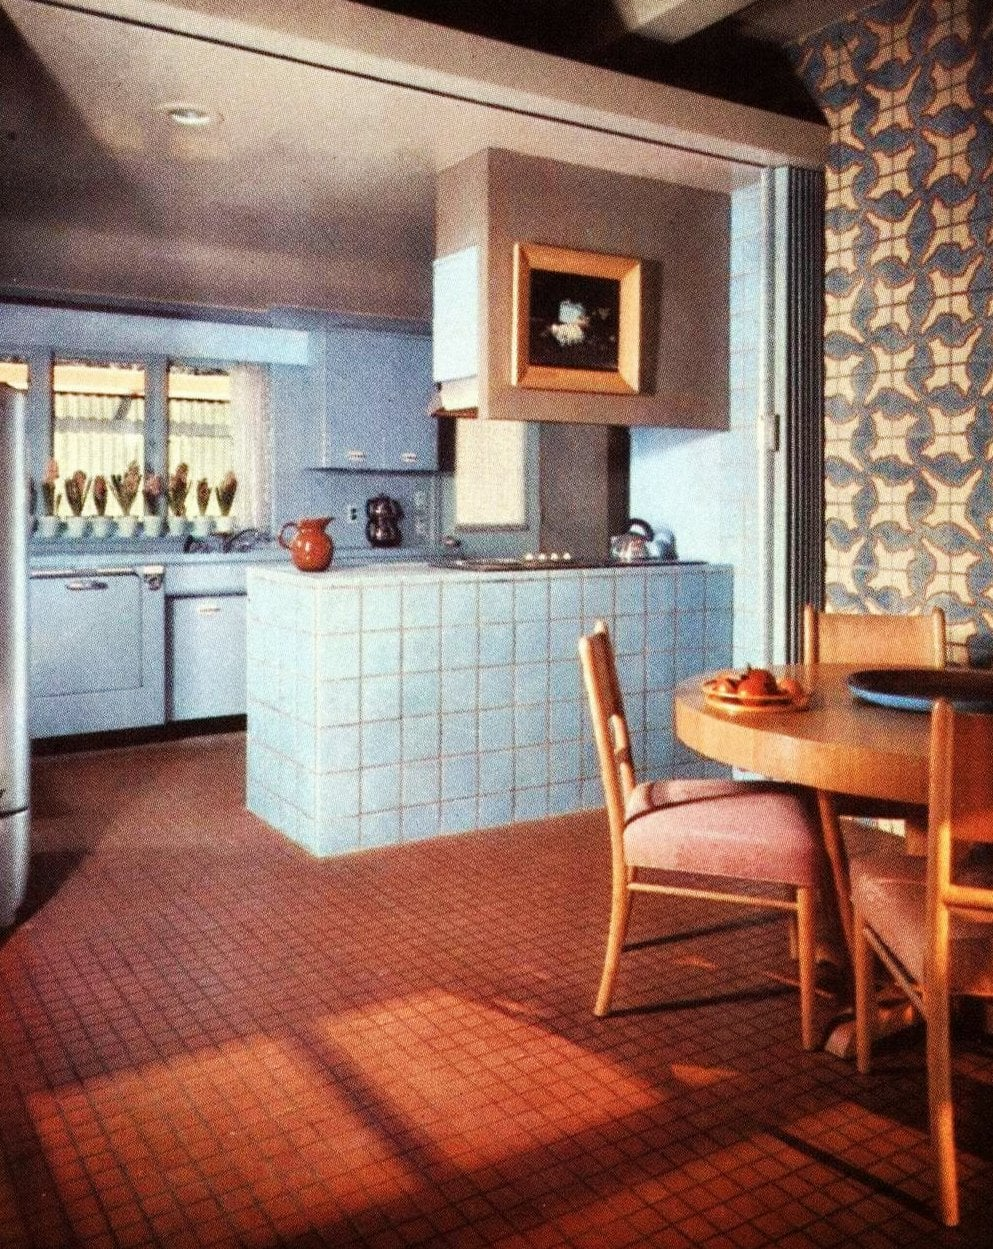 Square glazed ceramic tiles and quarry tiles for a retro kitchen